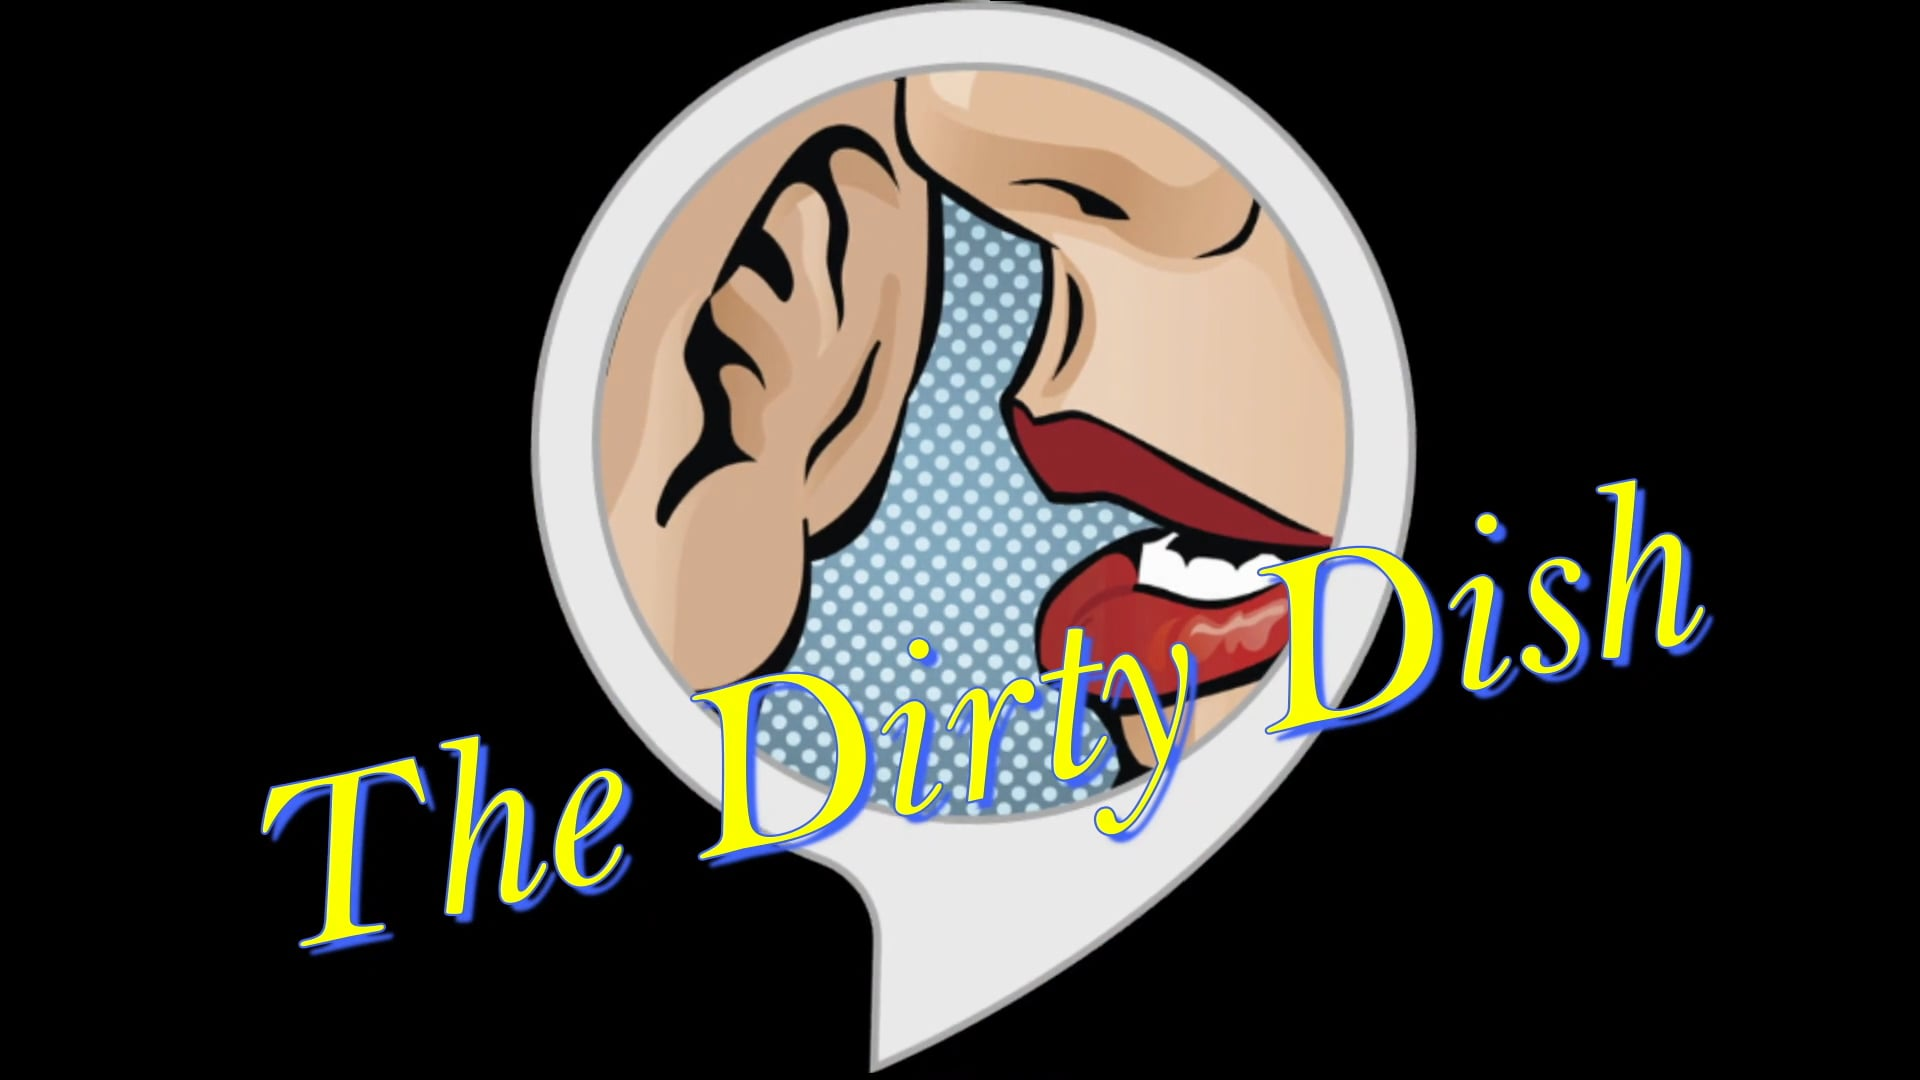 The Dirty Dish - Episode 3